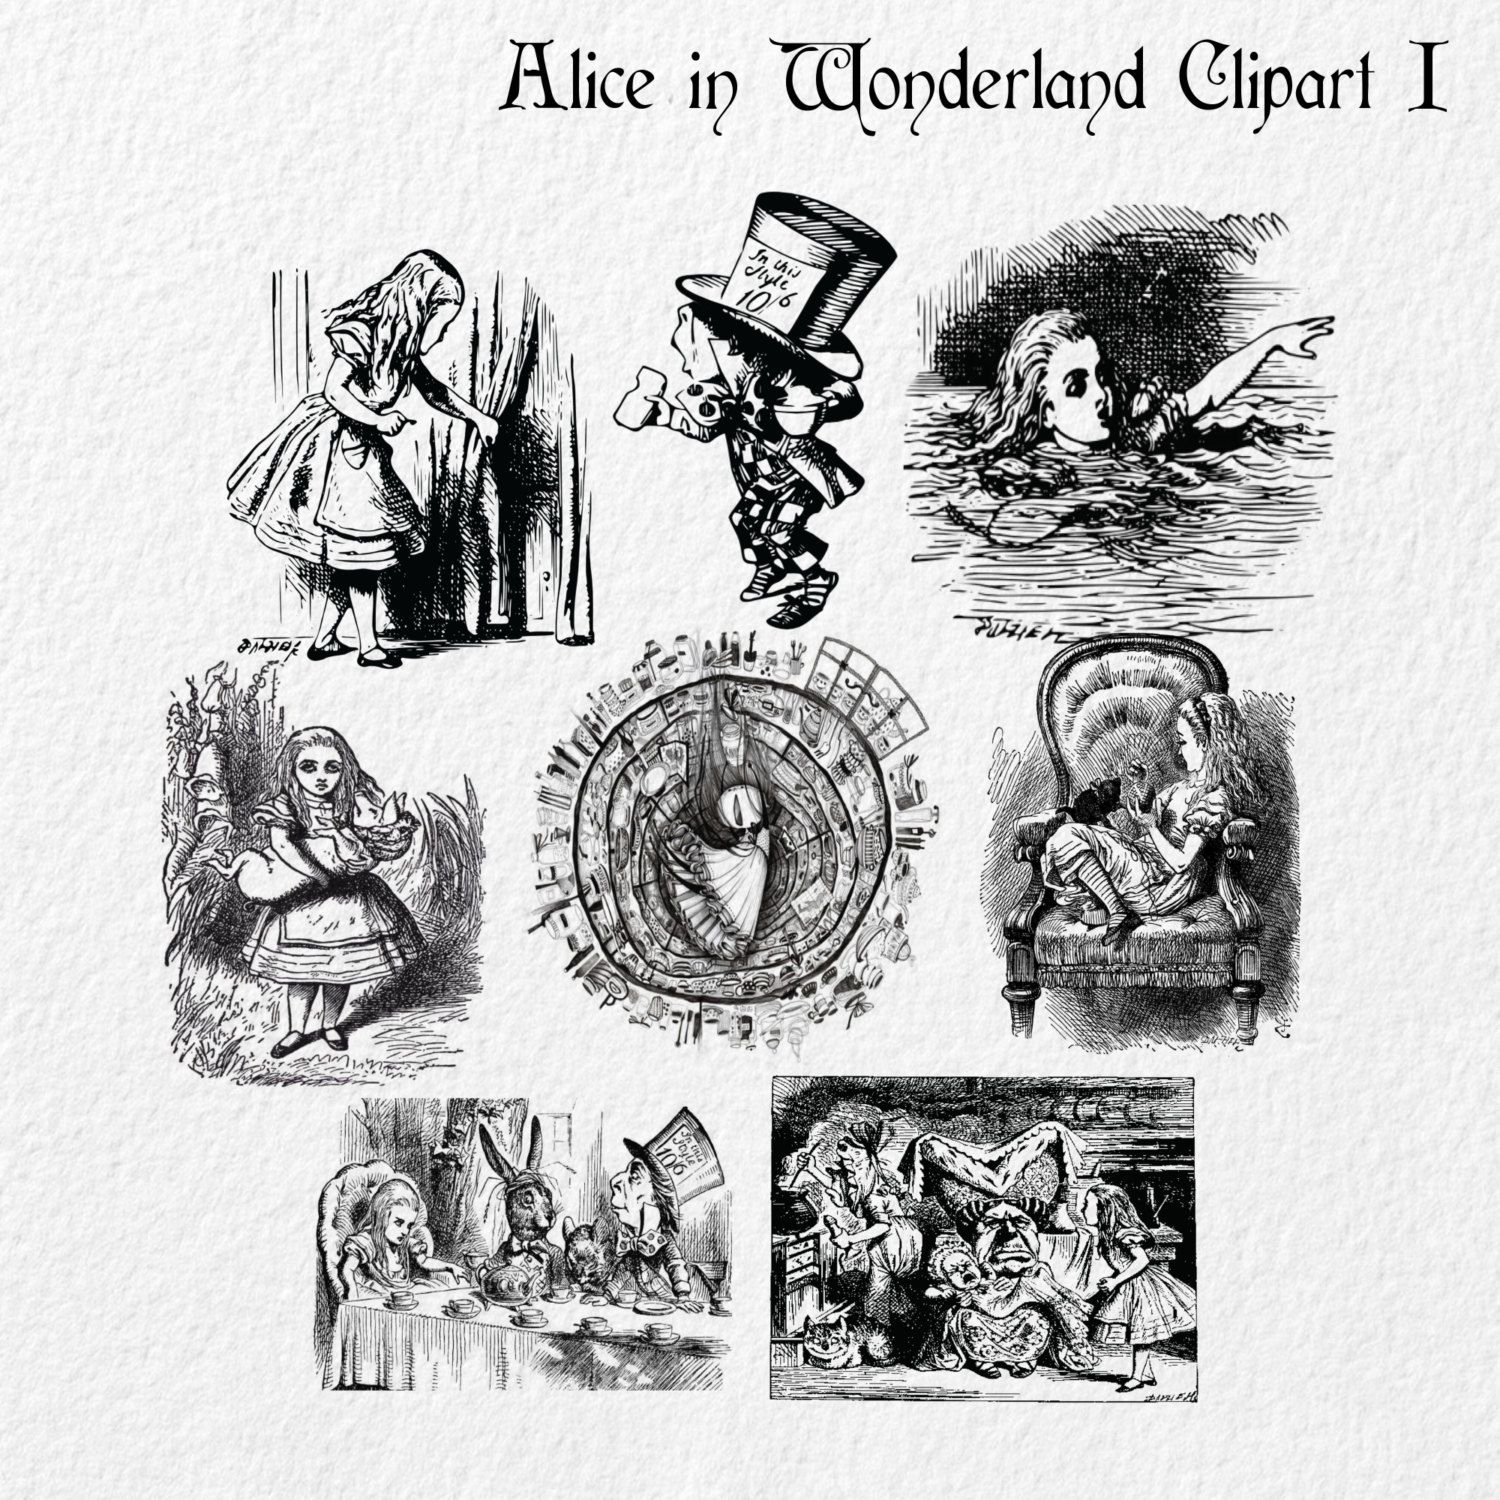 vintage clip art alice in wonderland - photo #14